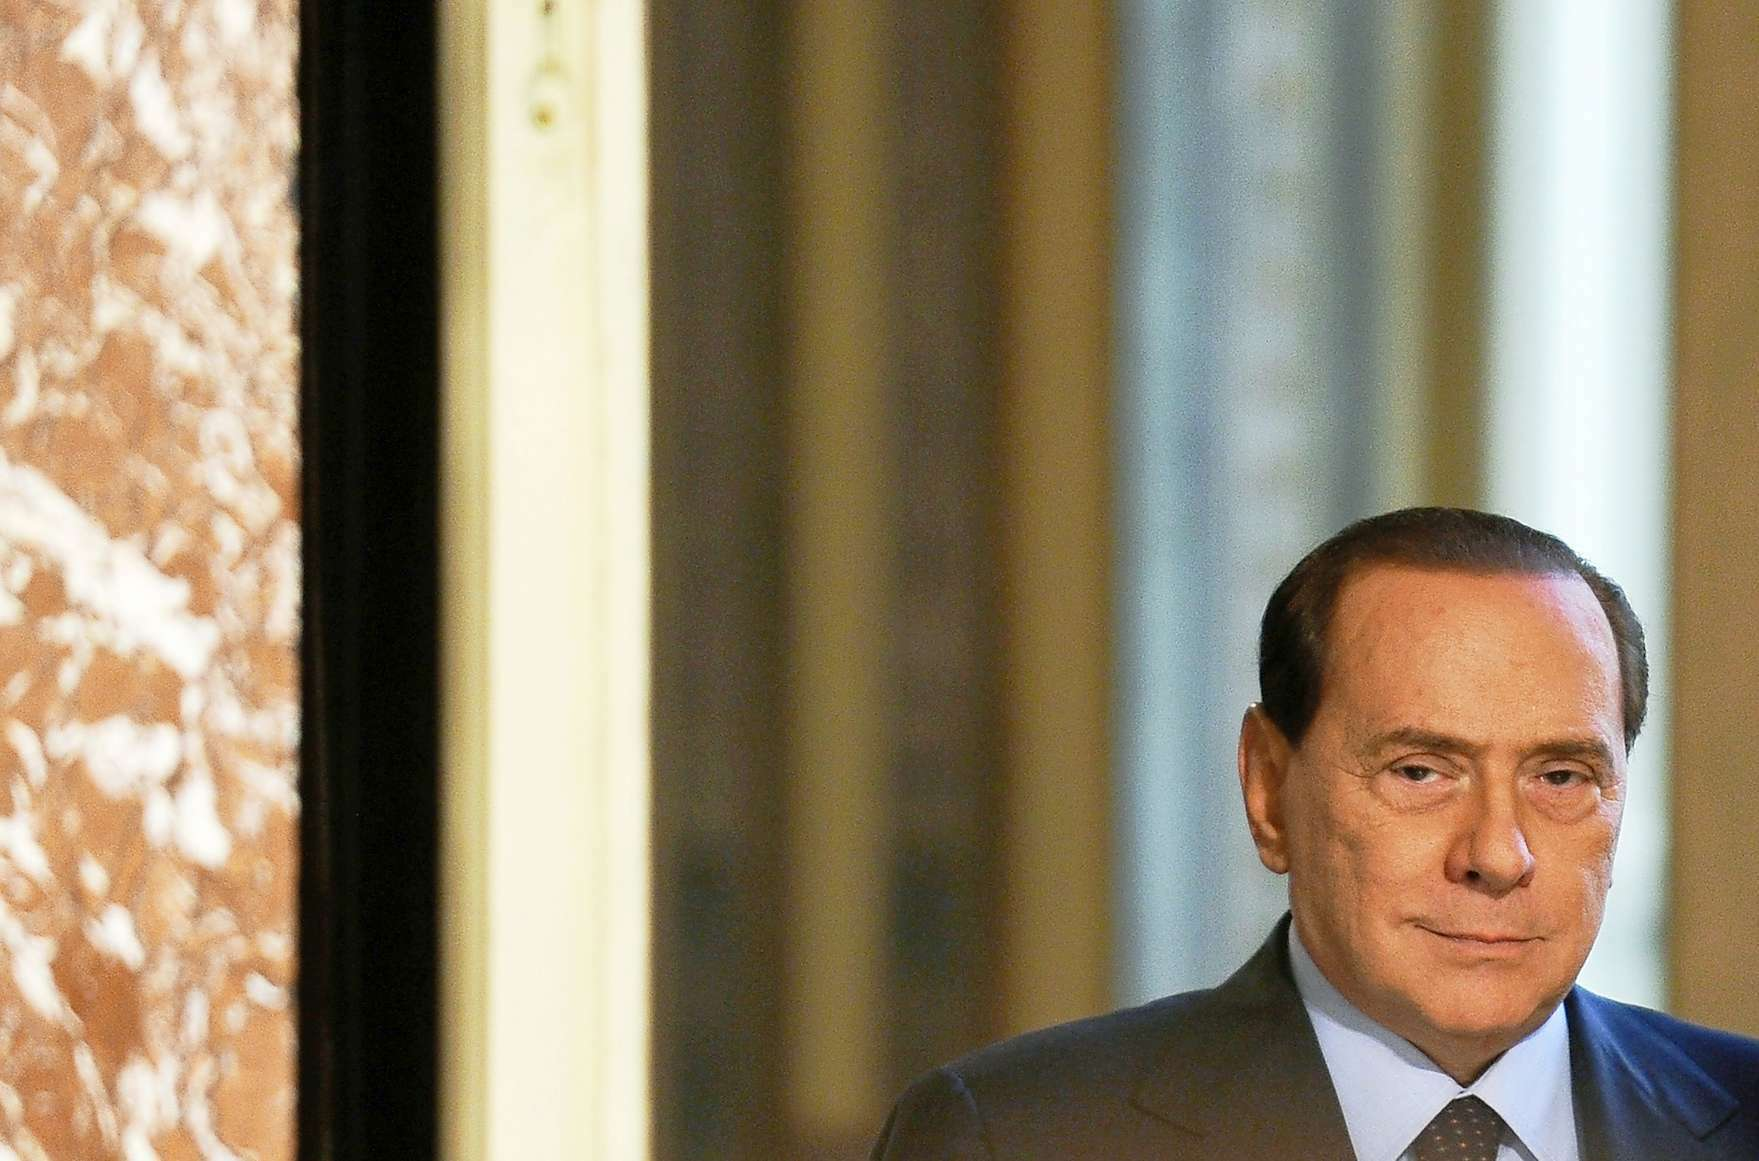 Fotos de berlusconi sin censura 96